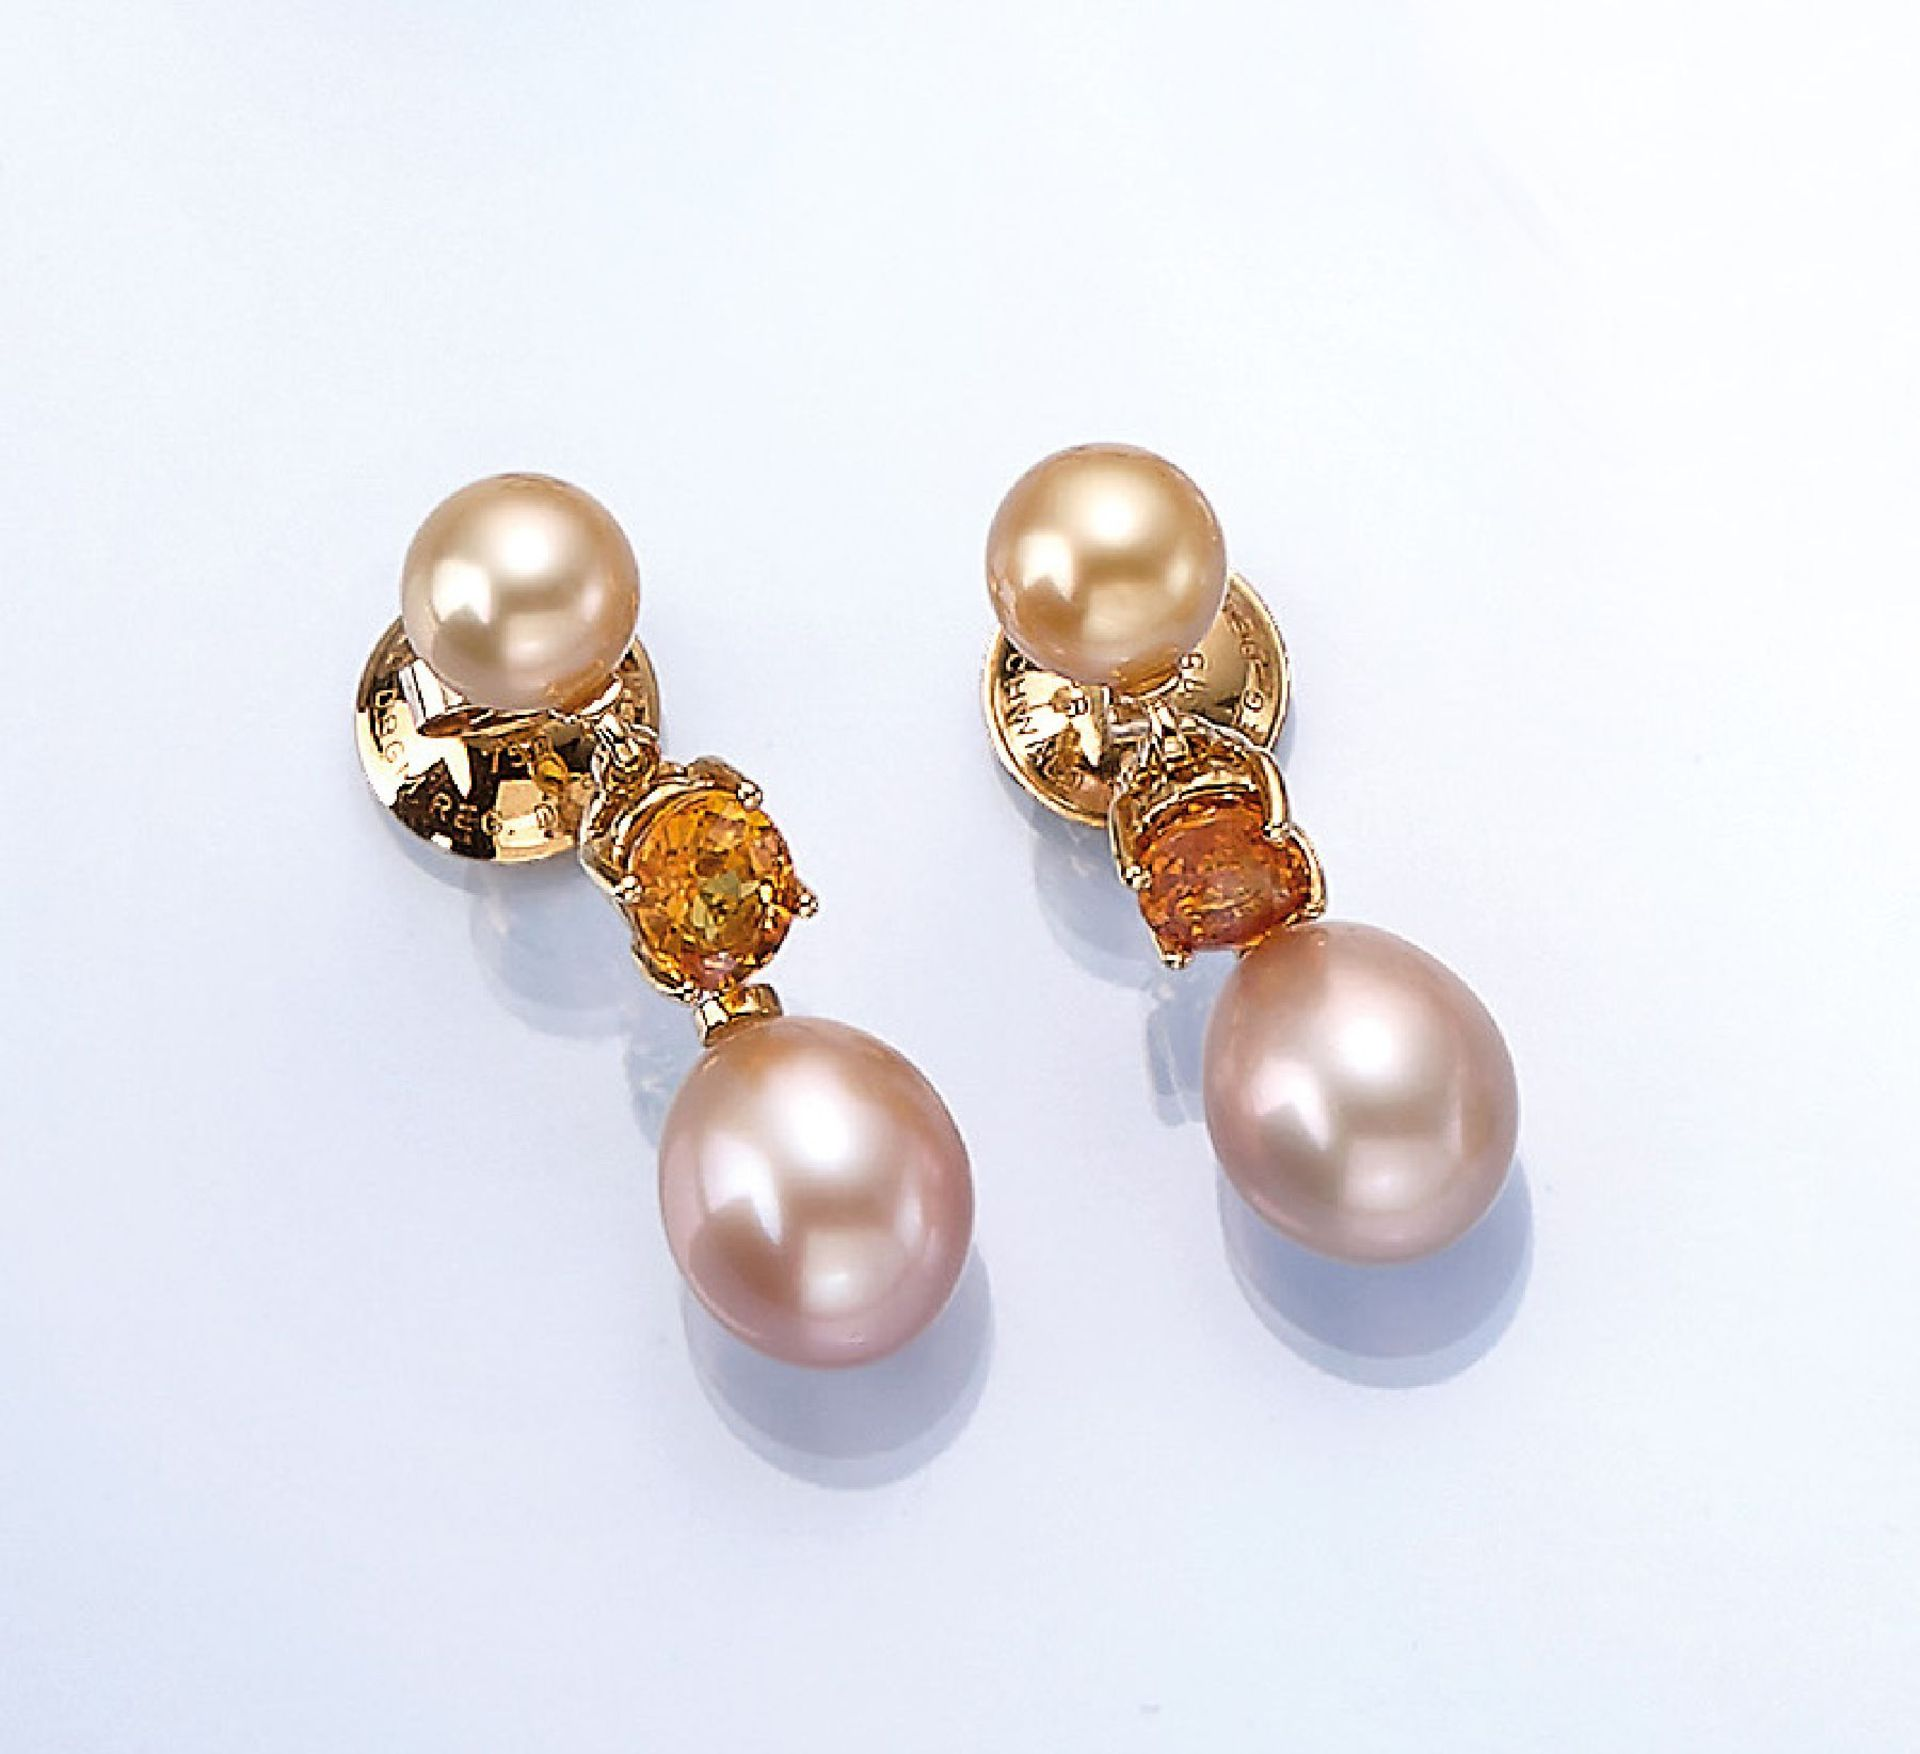 Los 61512 - Pair of 18 kt gold earrings with sapphires andcultured pearls , YG 750/000, 2 fine yellow